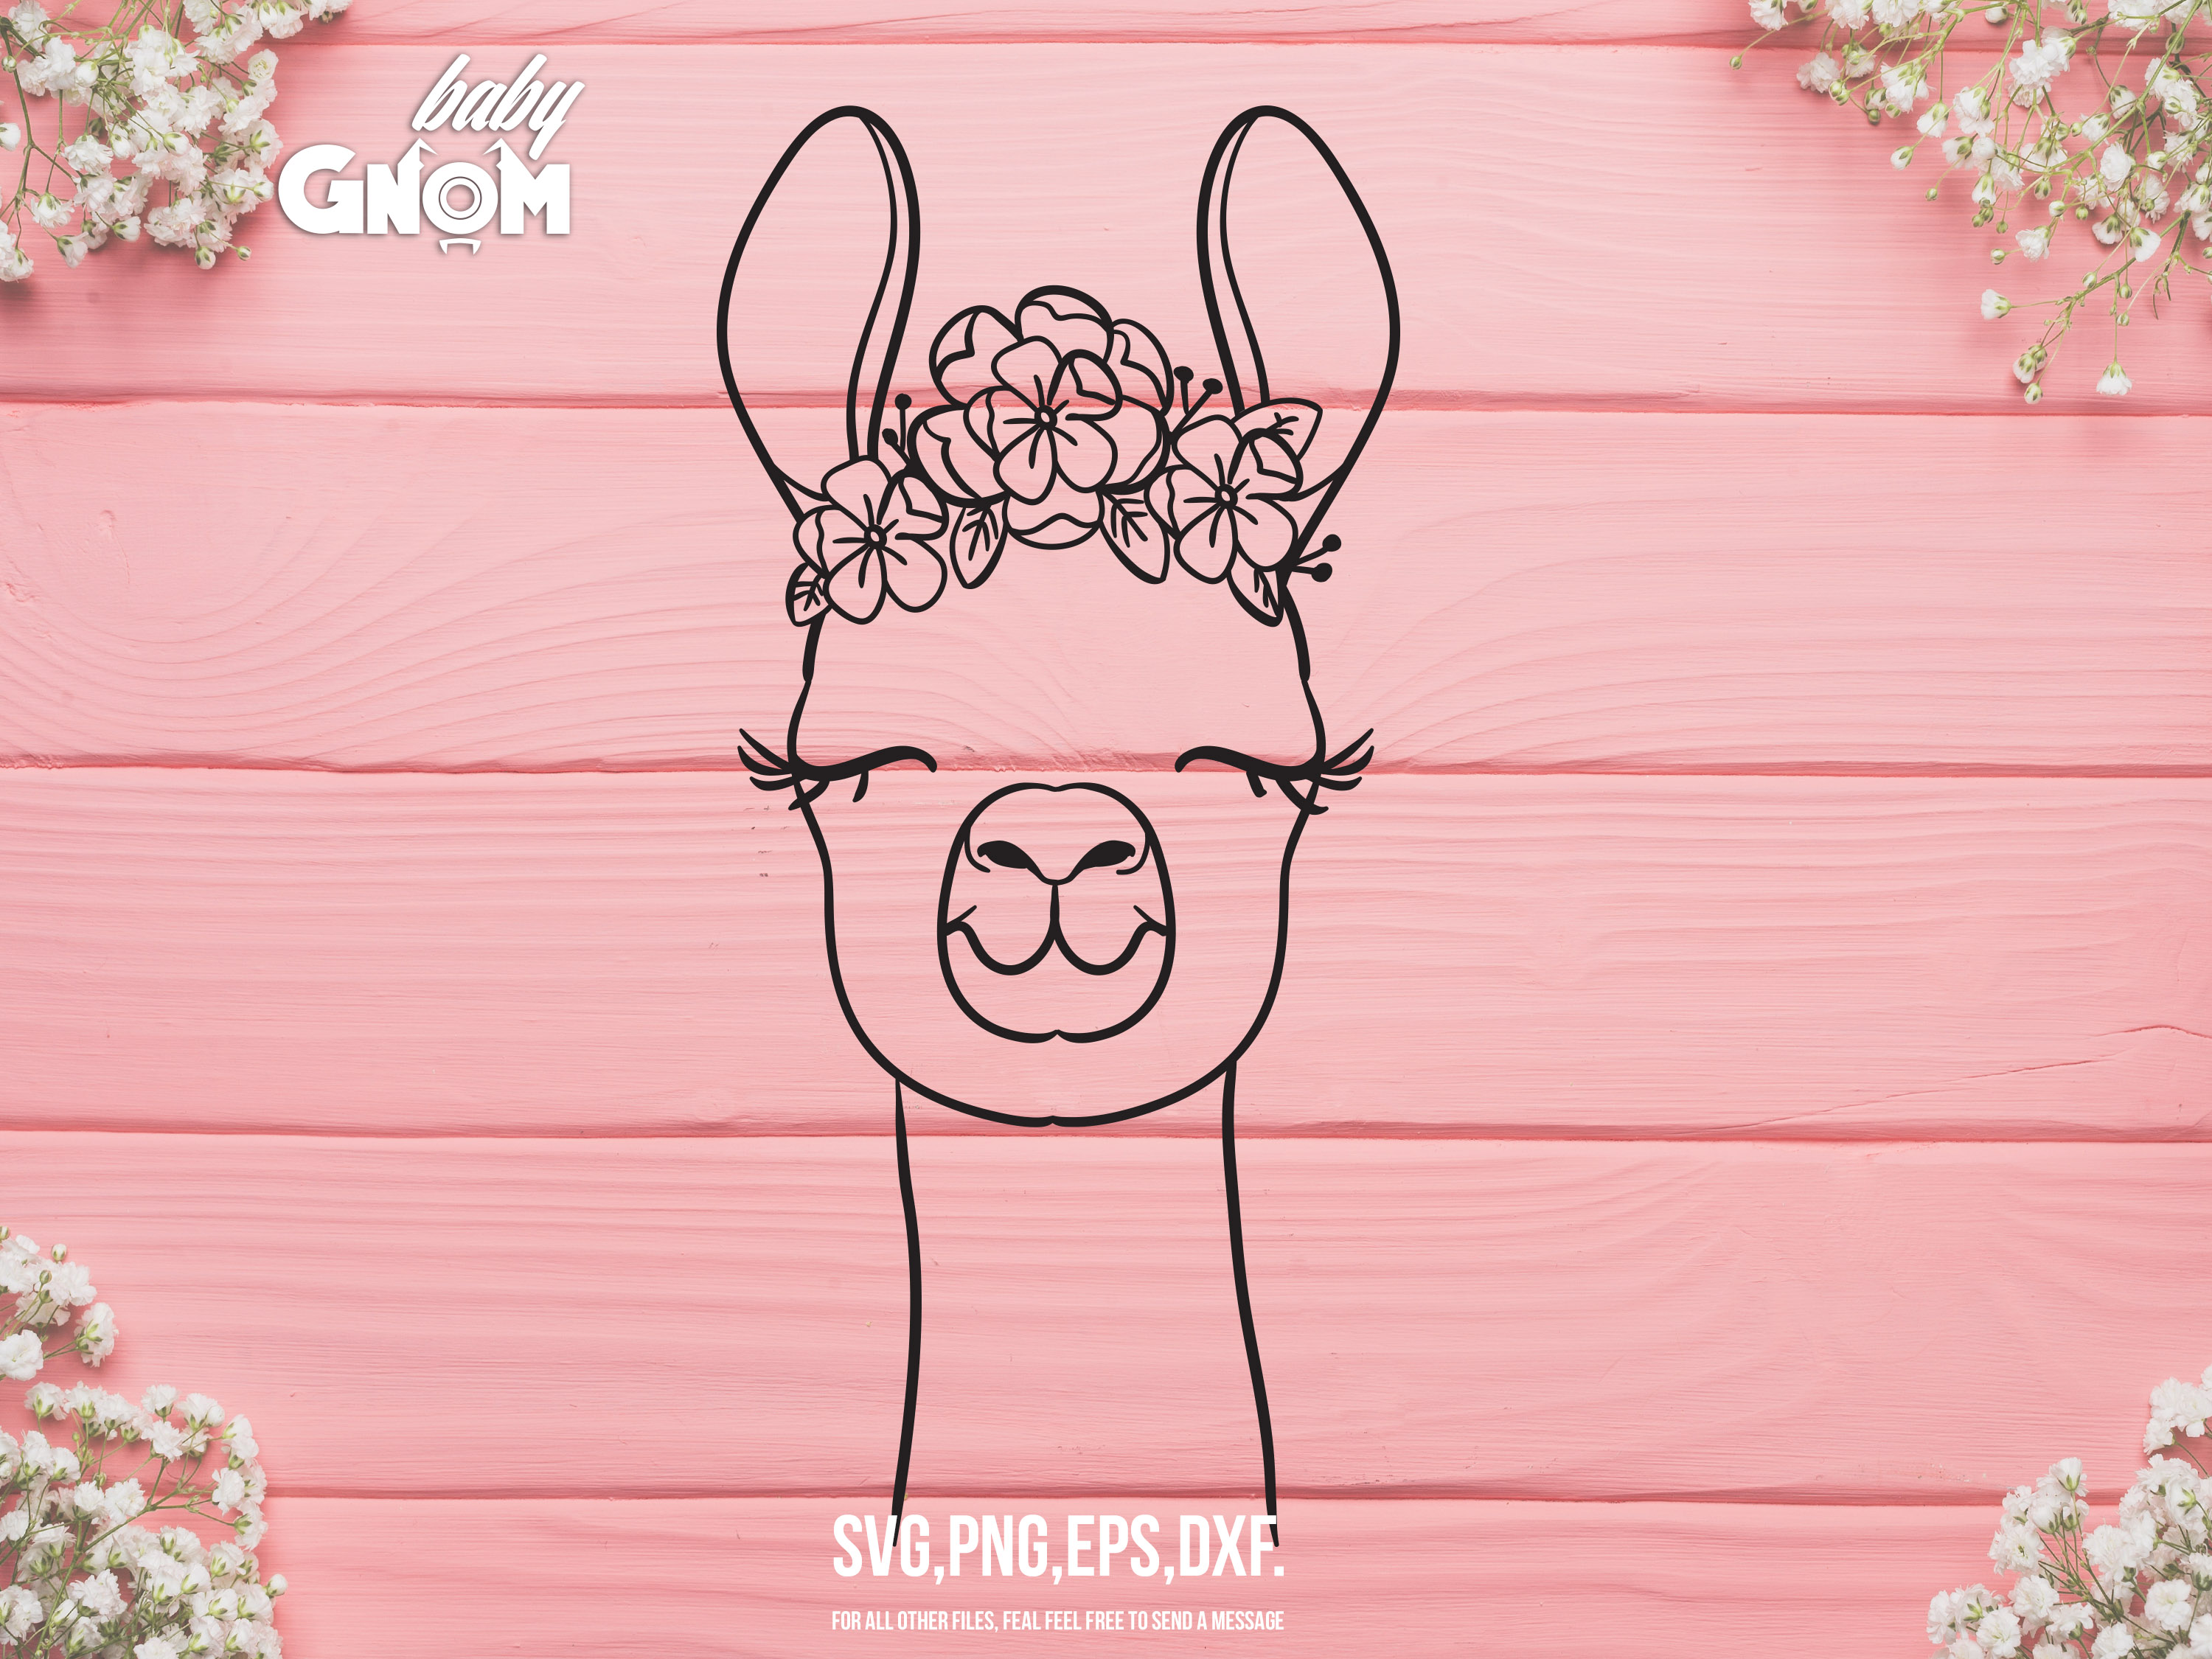 Download Free Llama With Flower Crown Graphic By Babygnom Creative Fabrica for Cricut Explore, Silhouette and other cutting machines.